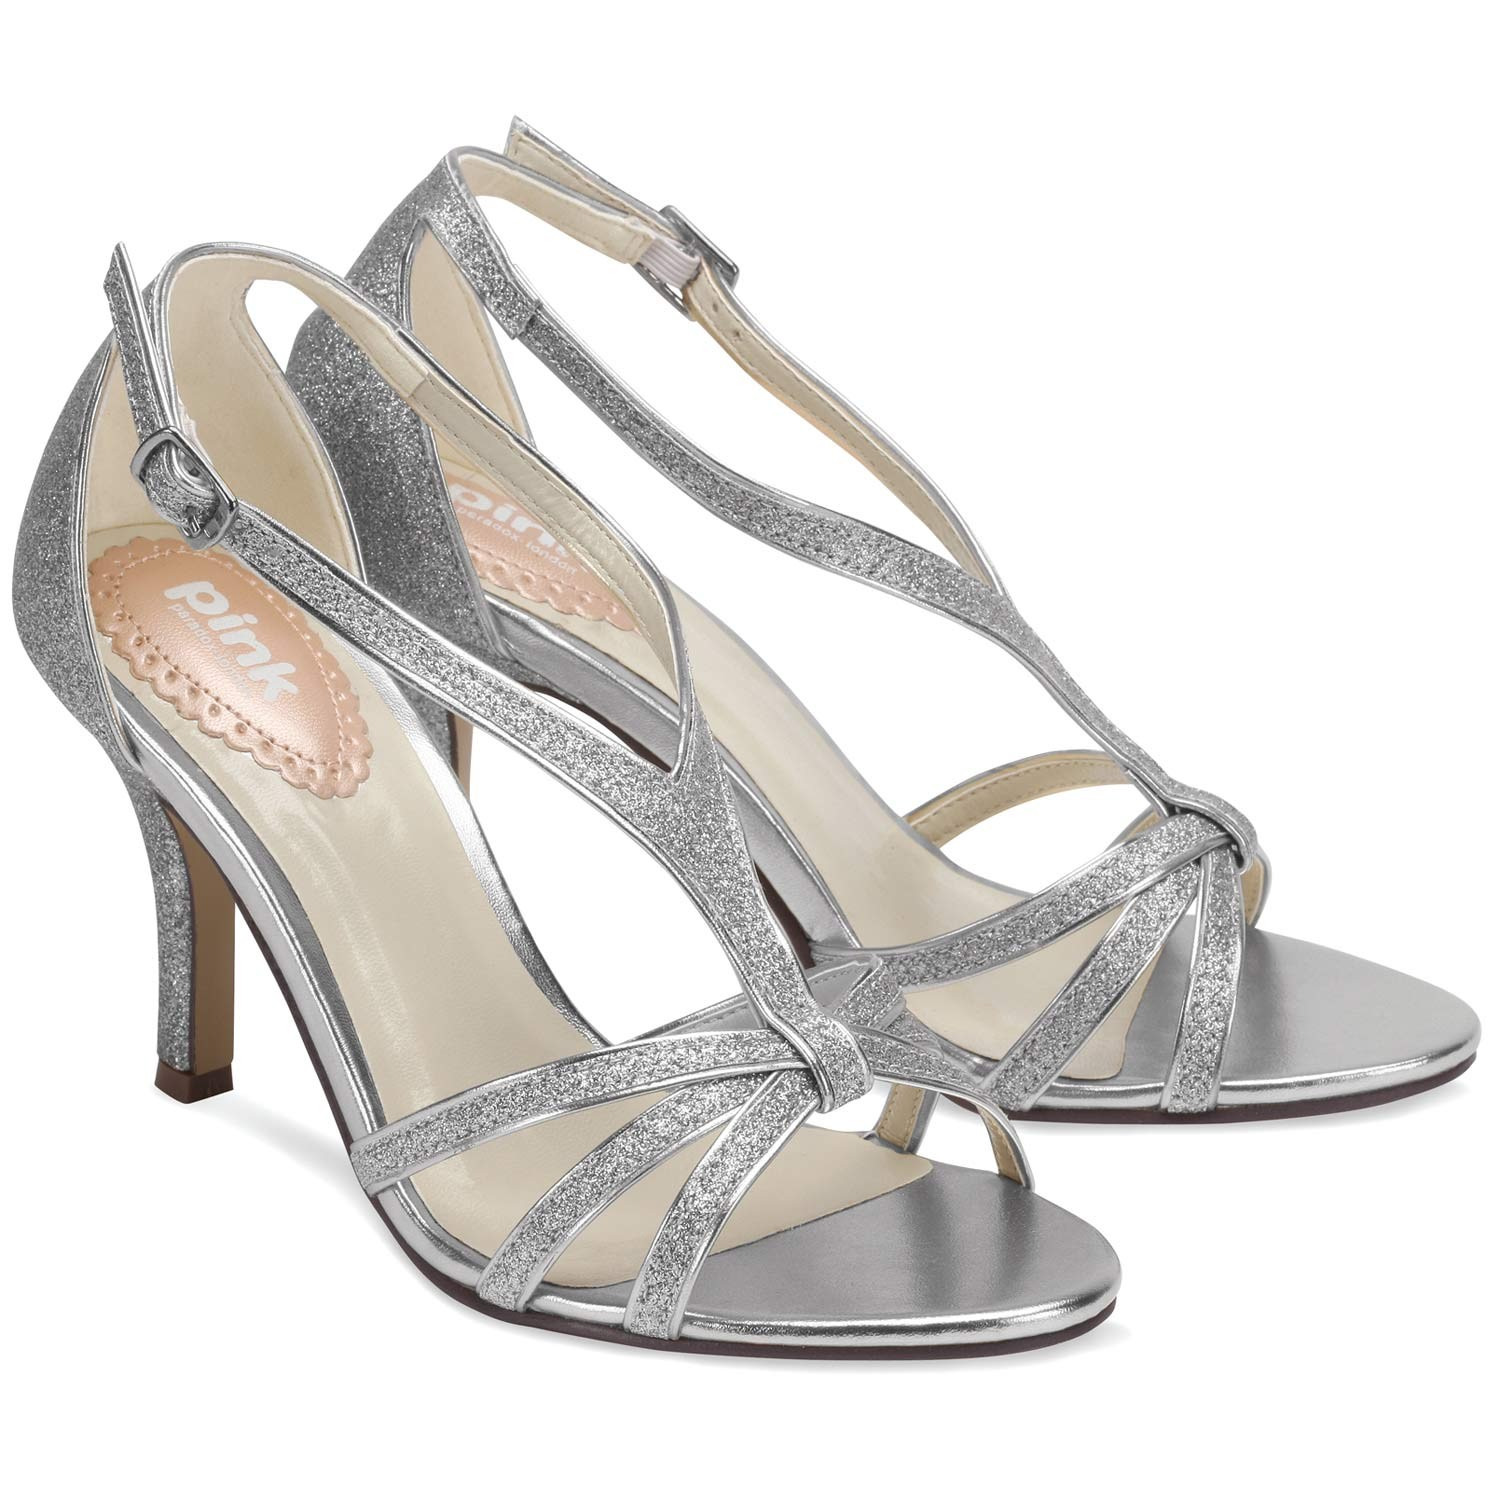 Gold Weding Shoes For Bridesmaids 015 - Gold Weding Shoes For Bridesmaids